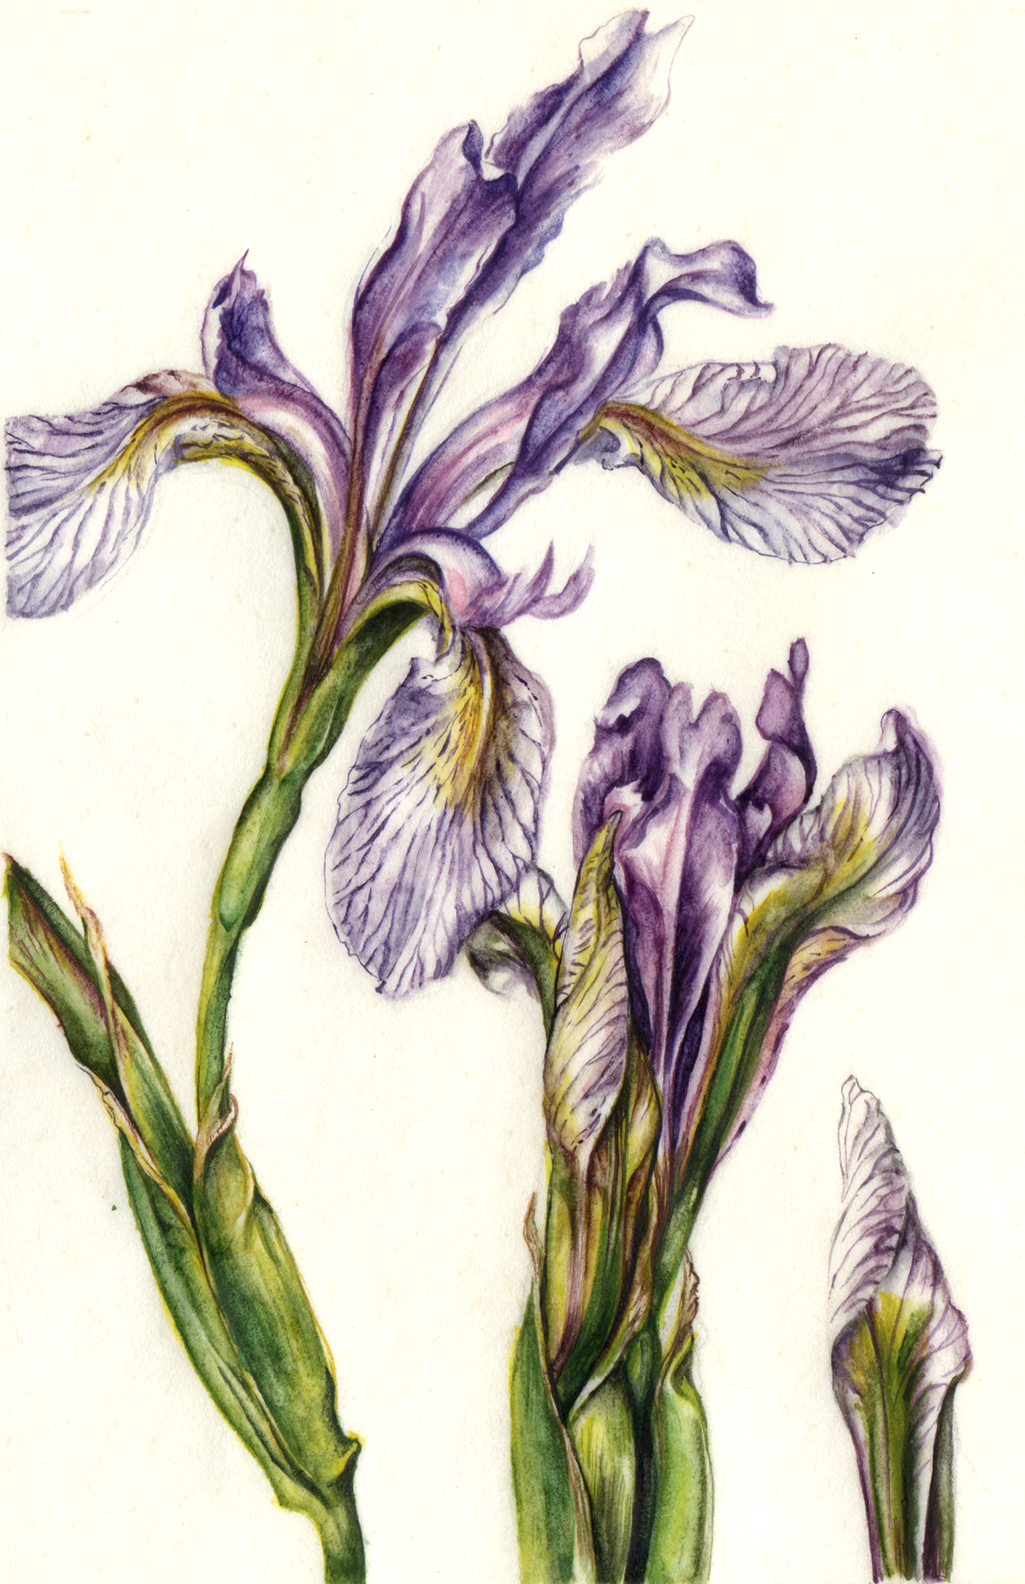 cathy weber - art - painting - woman -flower - watercolor - montana - painting - parchment - skin - botanical - study - flower - flag - iris